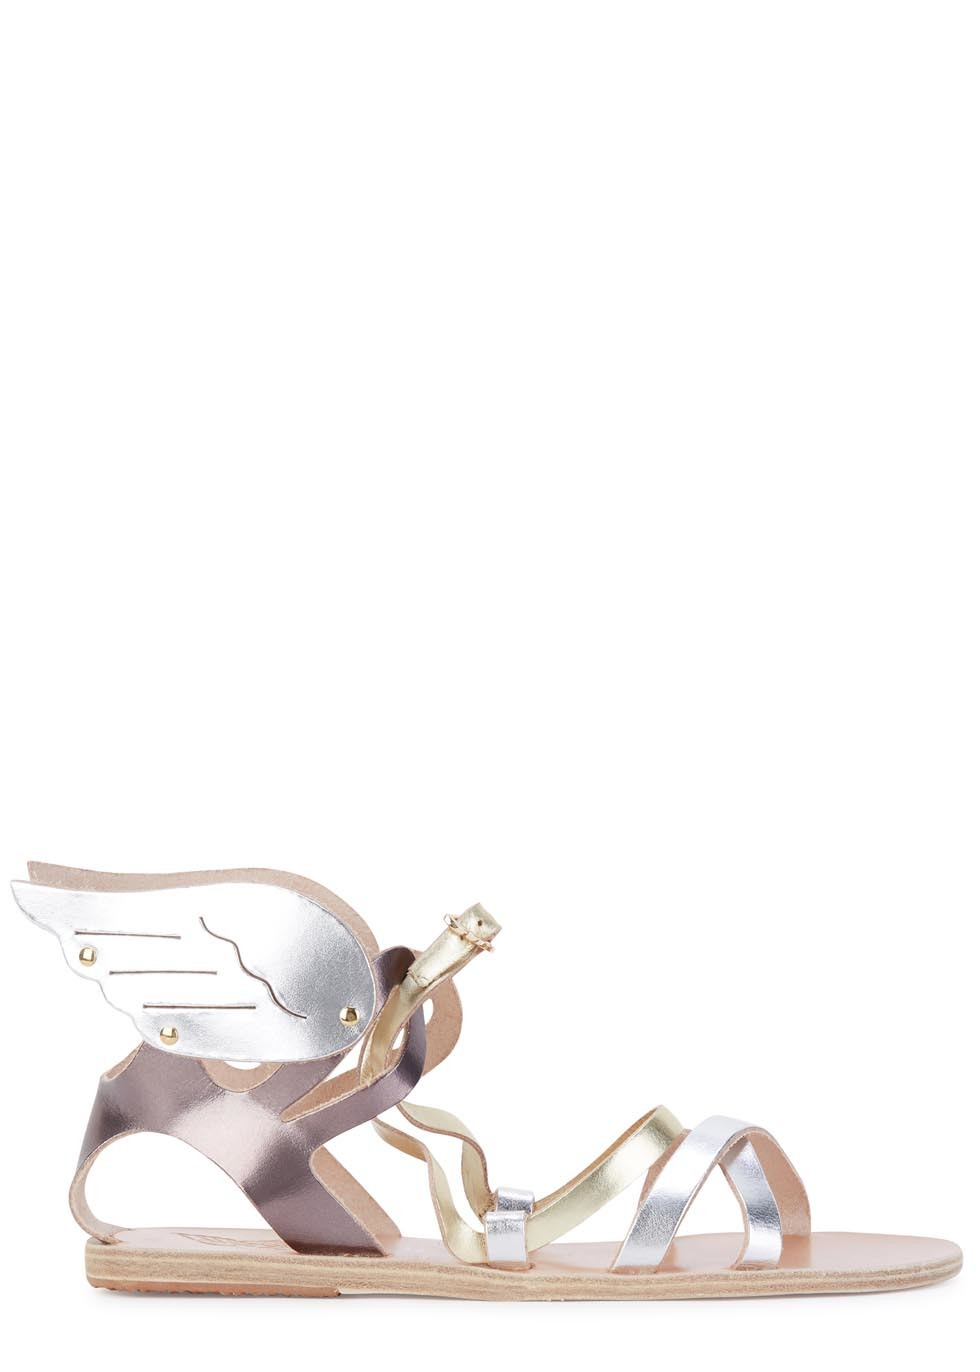 Nephele Metallic Leather Sandals - predominant colour: silver; secondary colour: gold; occasions: casual, holiday; material: leather; heel height: flat; ankle detail: ankle strap; heel: block; toe: open toe/peeptoe; style: gladiators; finish: metallic; pattern: plain; season: s/s 2016; wardrobe: basic